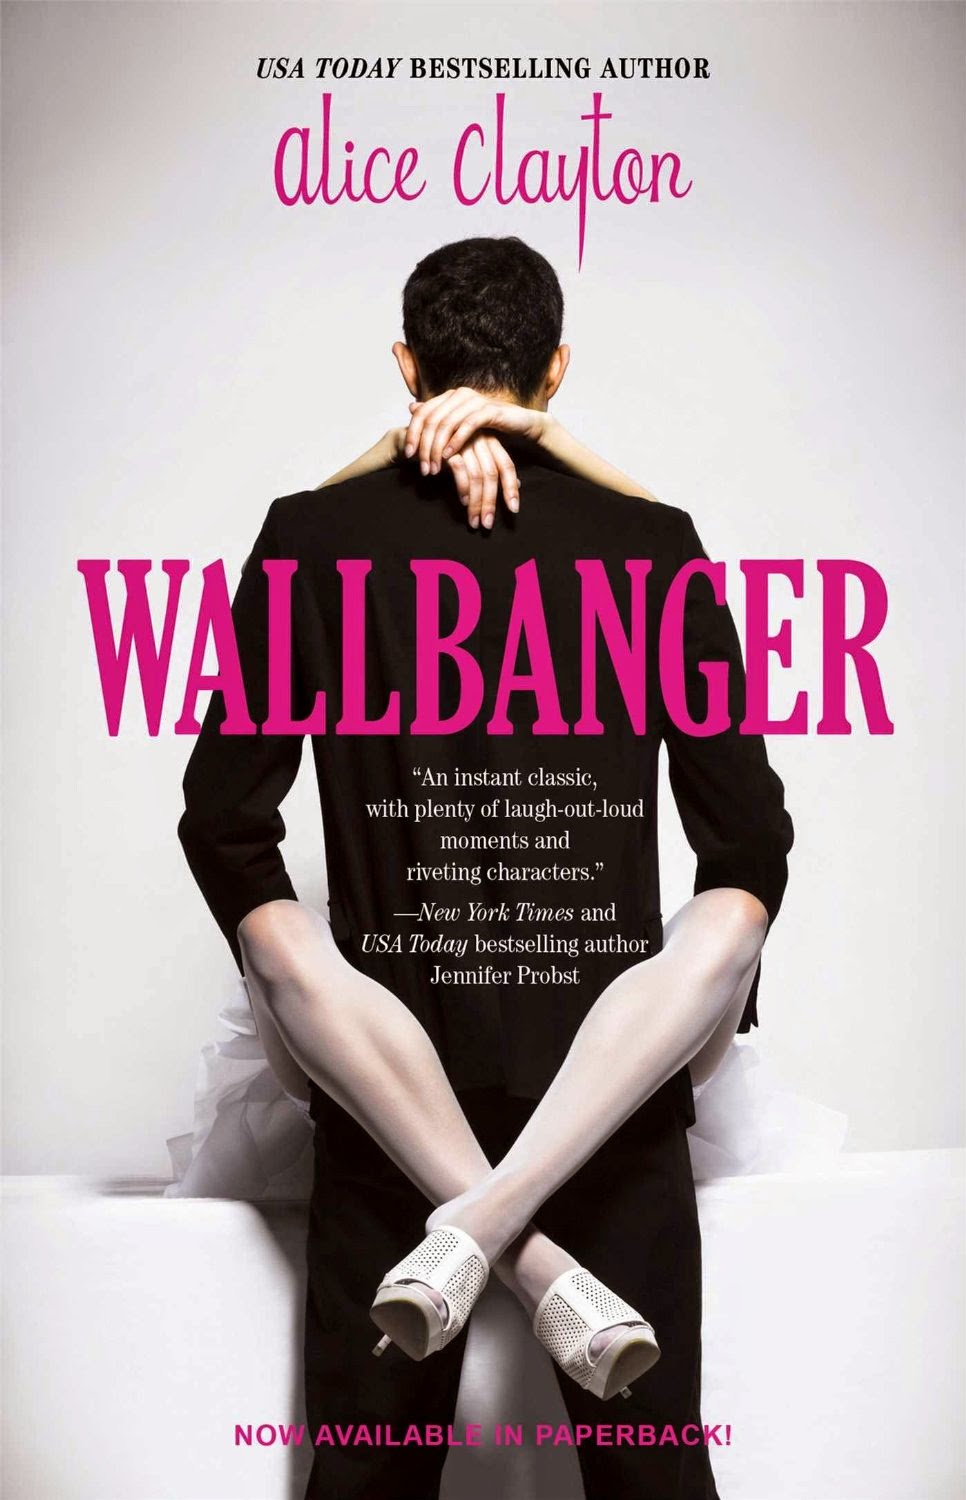 http://www.amazon.com/Wallbanger-Cocktail-Series-Alice-Clayton-ebook/dp/B00B73MULG/ref=pd_sim_b_3?ie=UTF8&refRID=0HQB7AYQBD162HJ8N01W